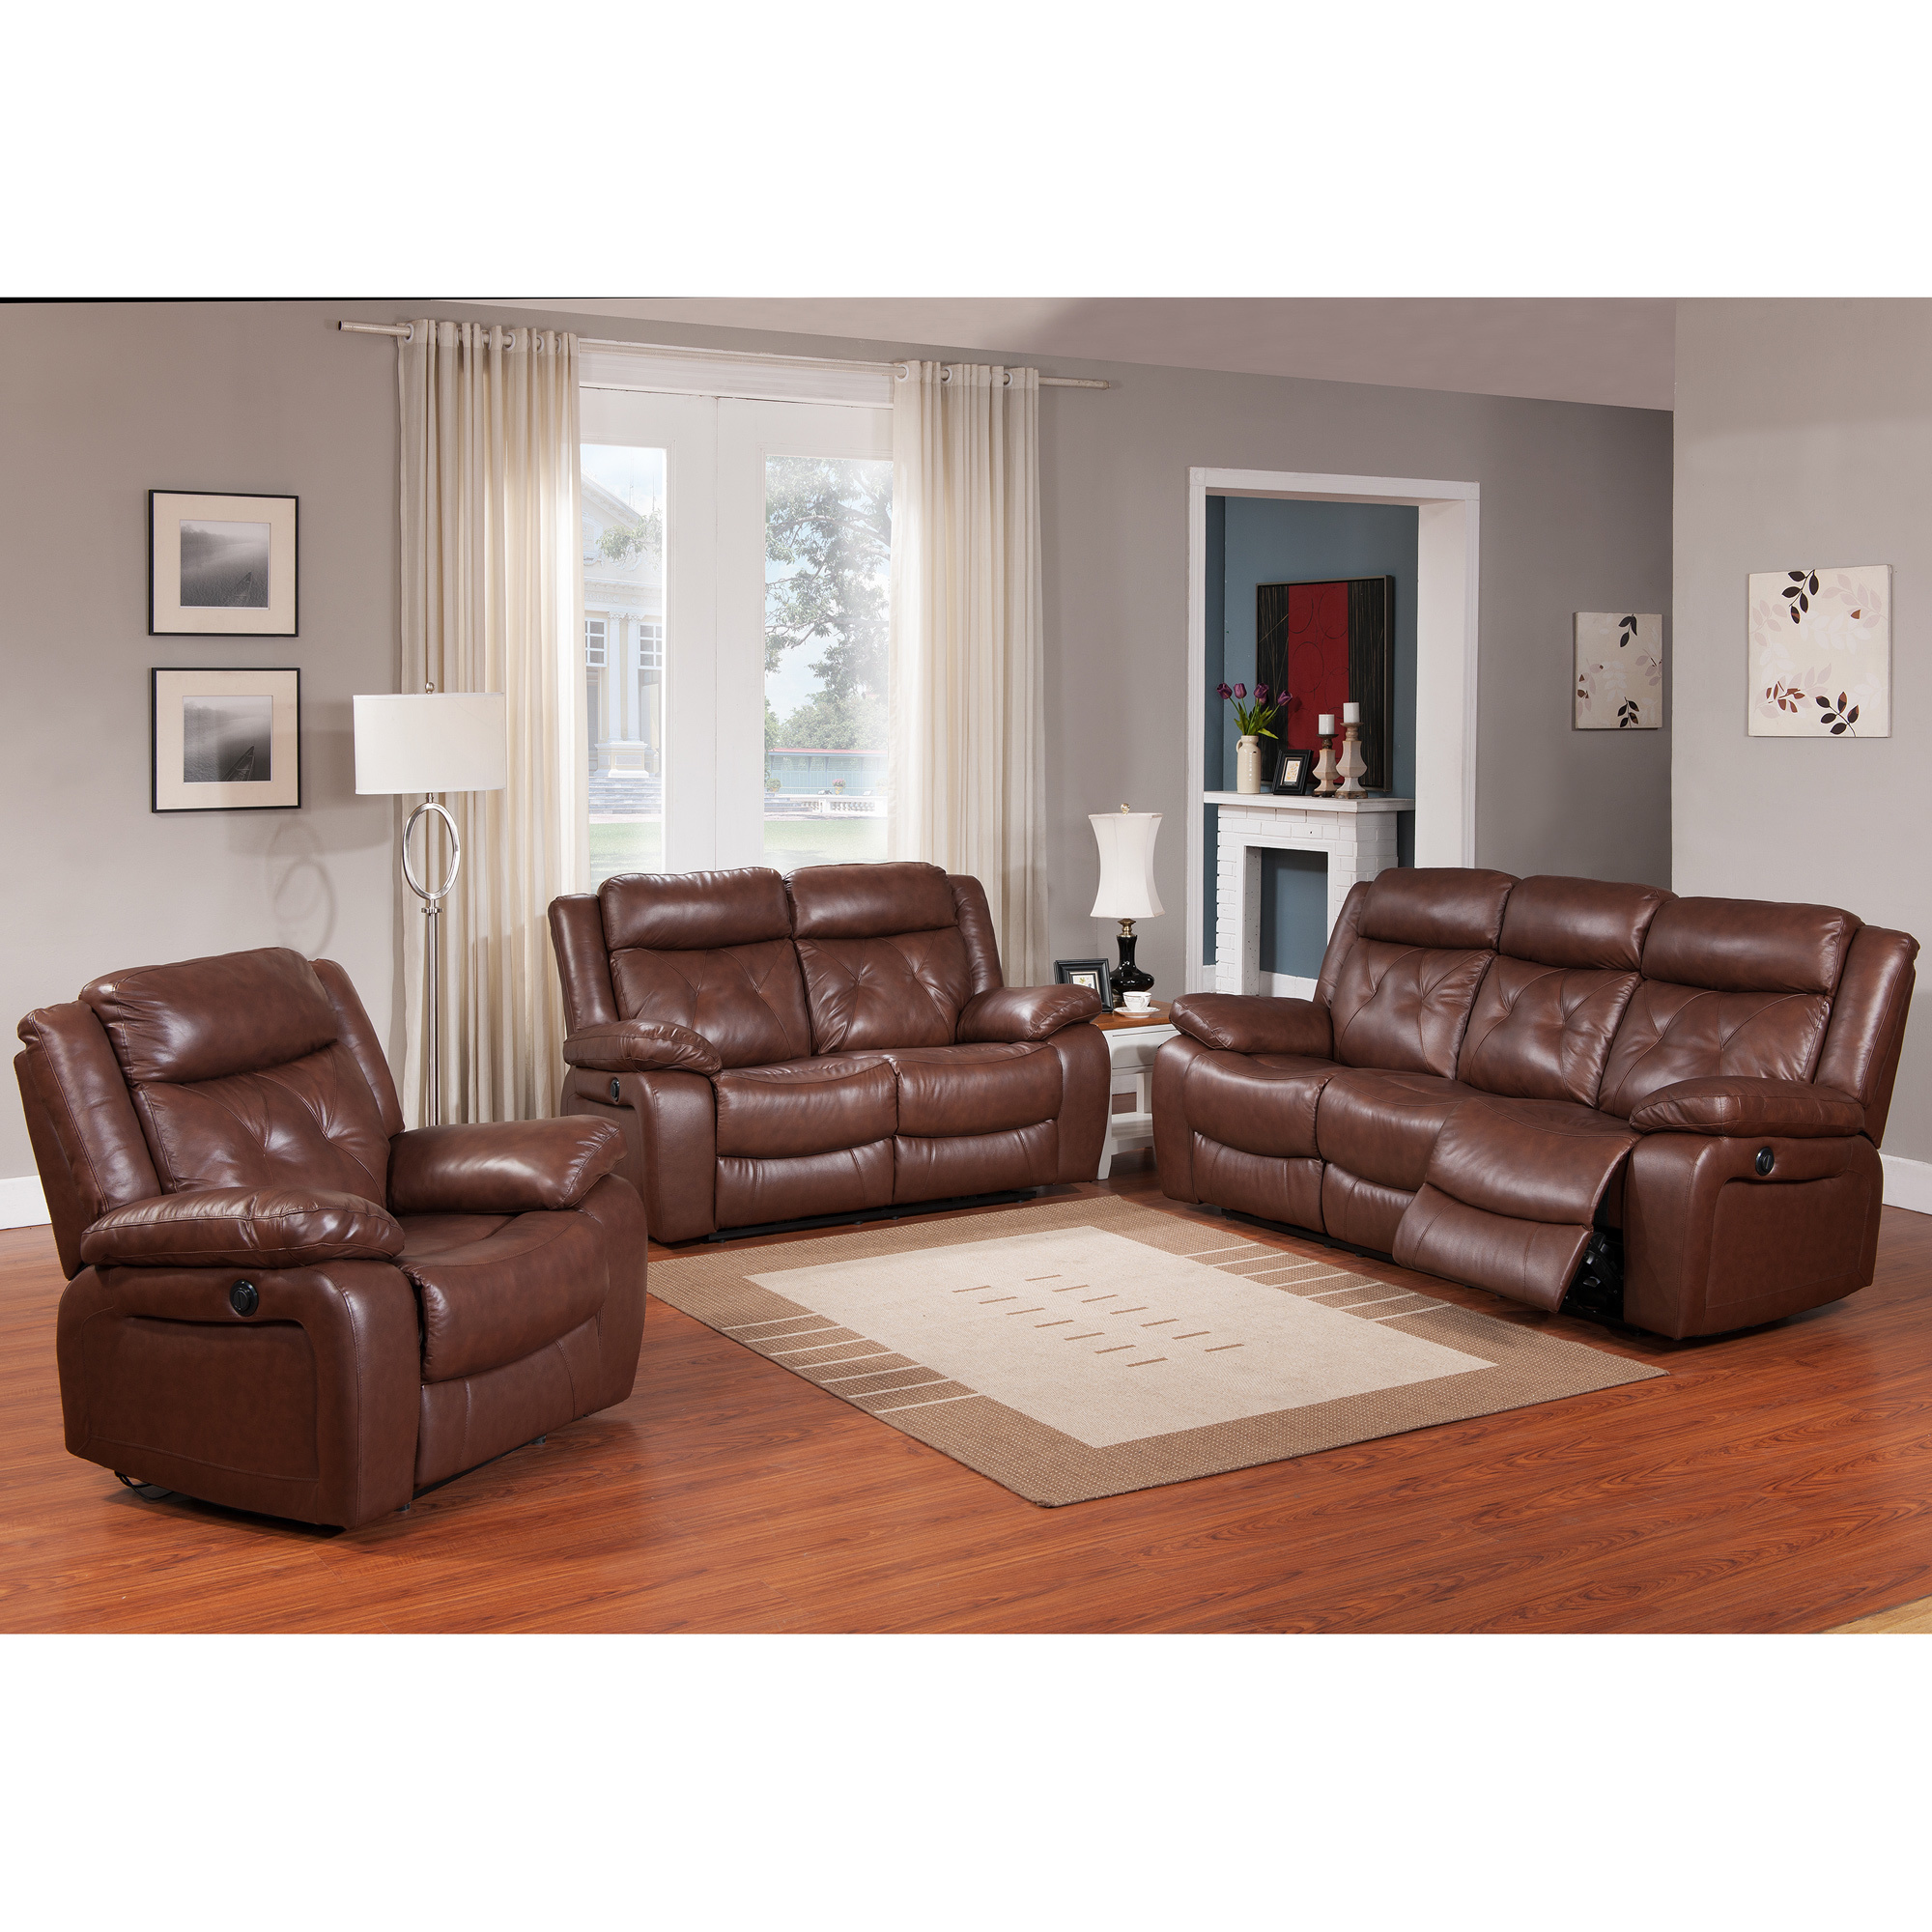 Beverly Furniture Rivallo Brown 3 Piece Top Grain Leather Power Reclining  Sofa Set